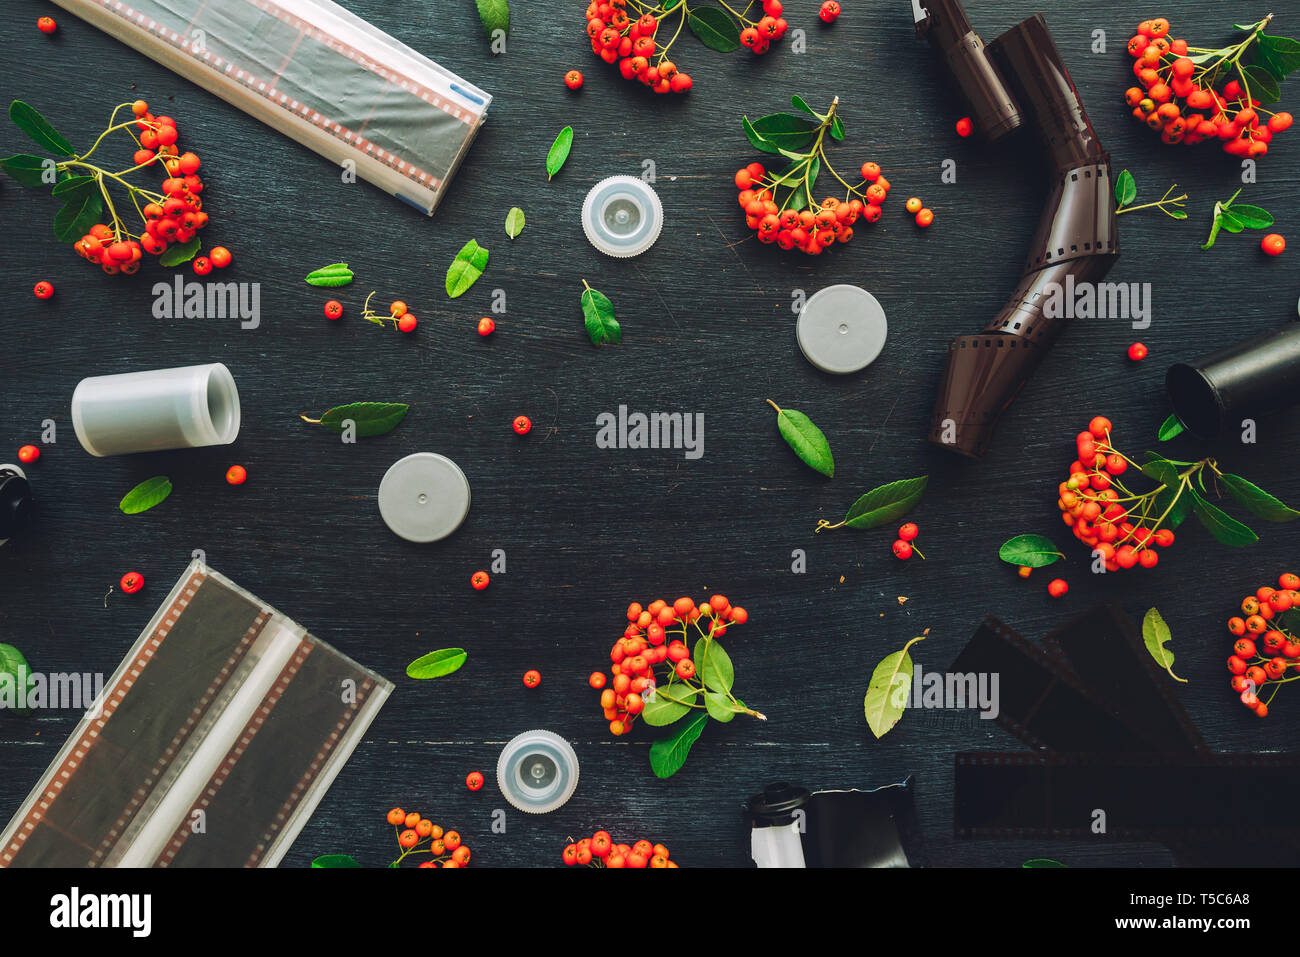 Vintage retro photographic equipment flat lay on dark background decorated wild berry fruit arrangement - Stock Image